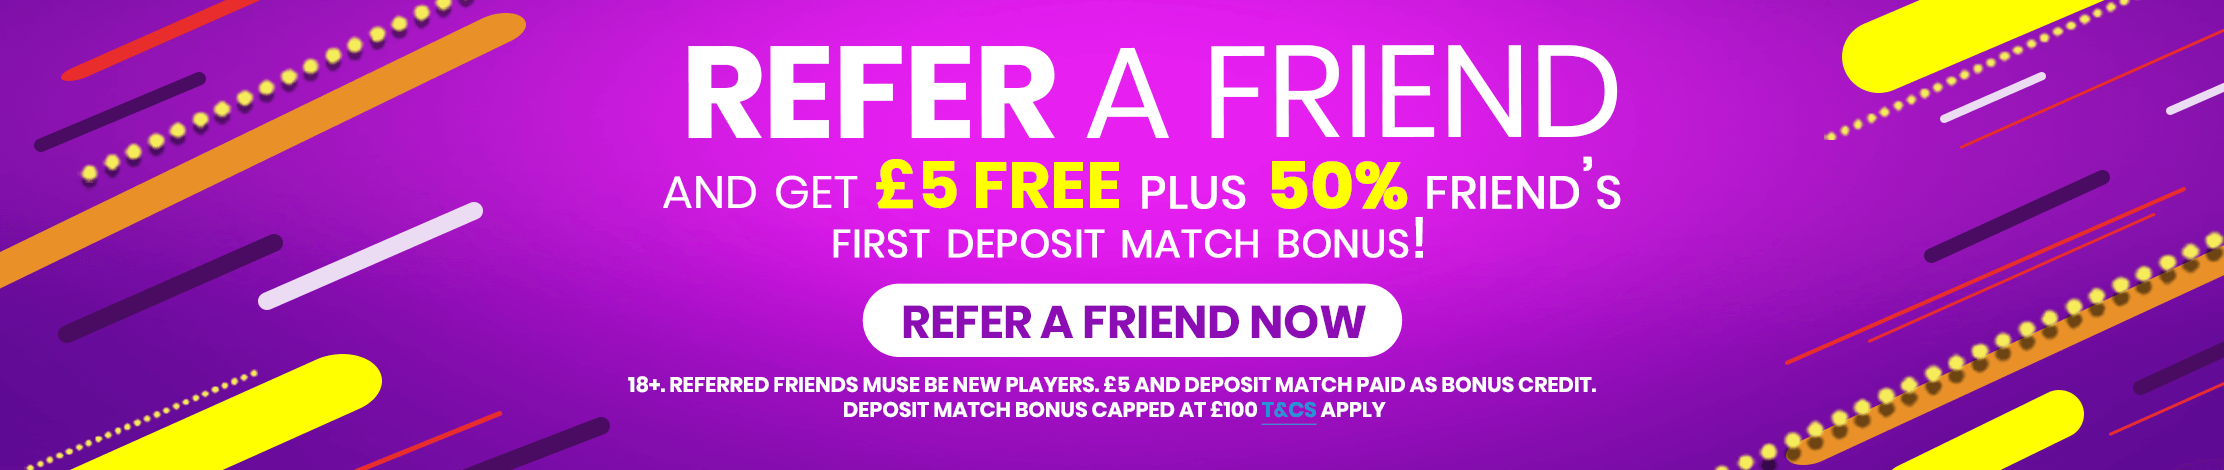 Refer a friend and get £5, plus 50% friend's first deposit match bonus!